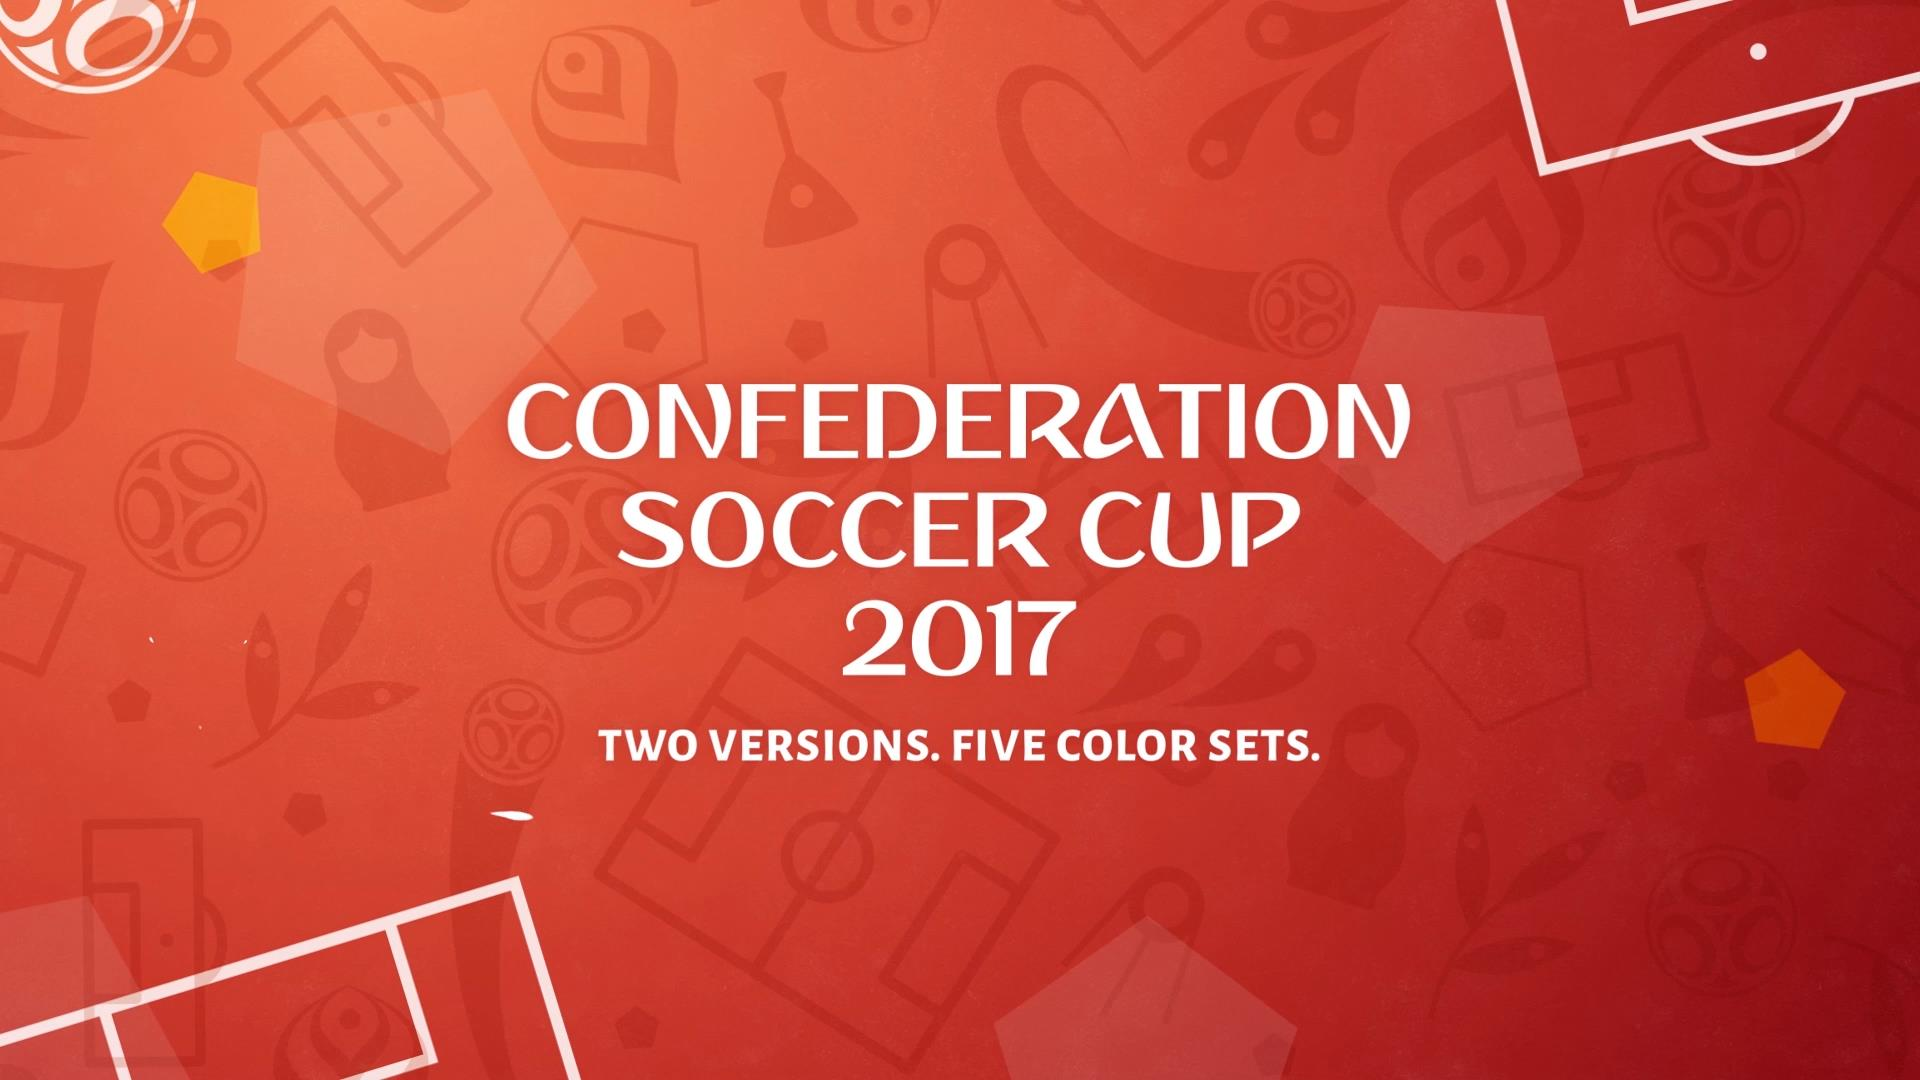 Confederation World Cup Football (Soccer) Cup Opener